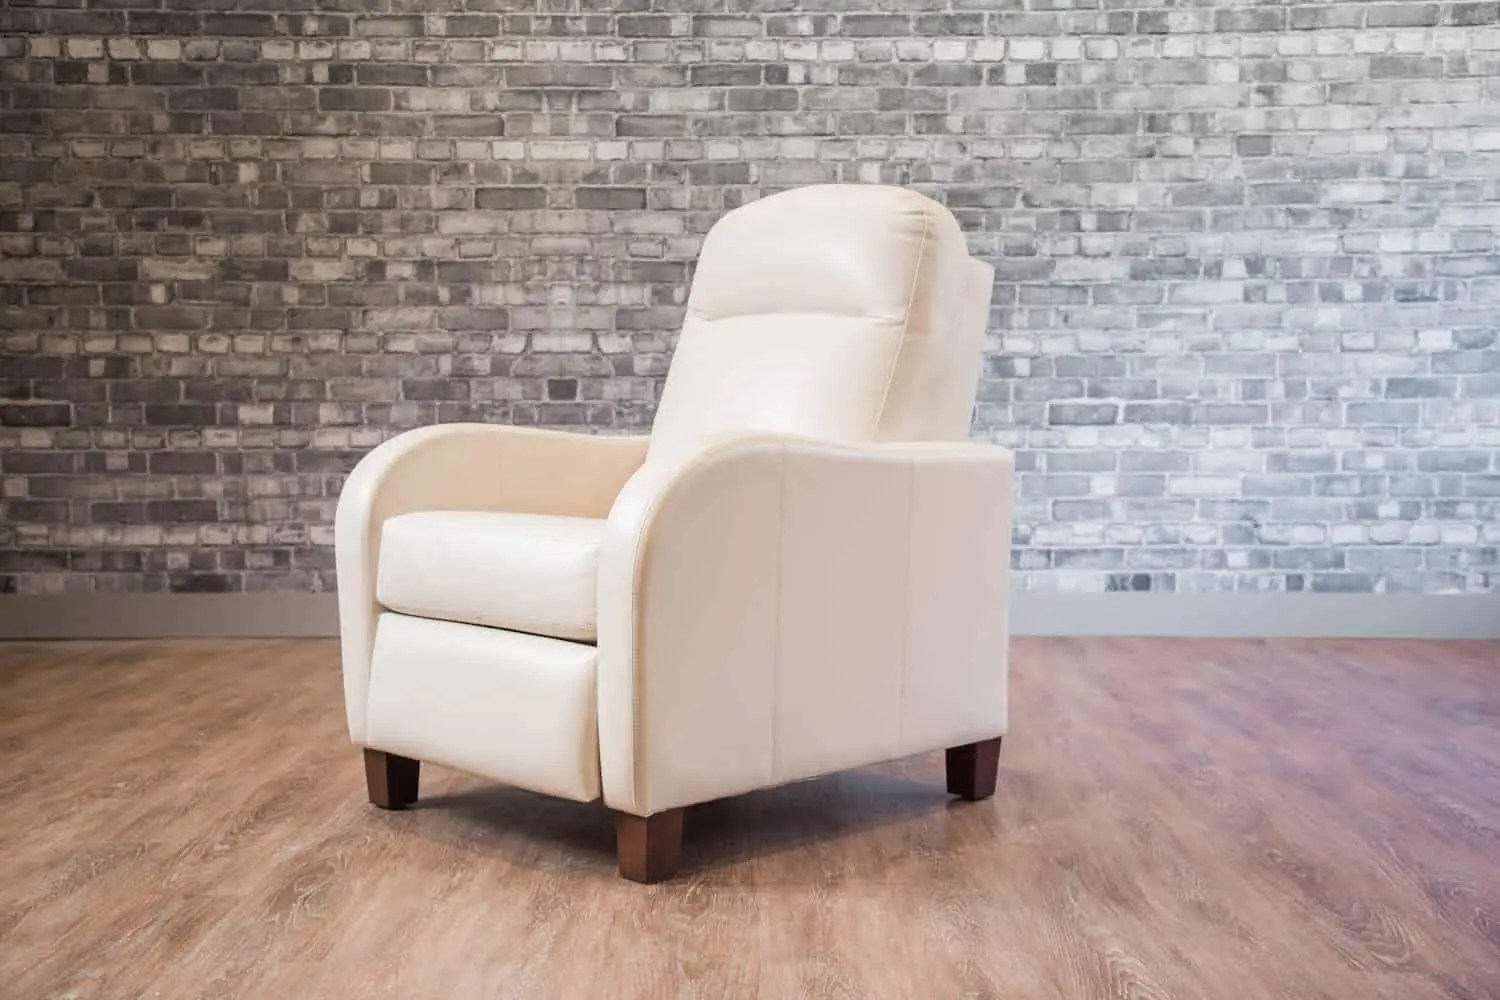 Leather Recliner Chairs Canada Metro Recliner Waterfall Arm Canada 39s Boss Leather Sofas